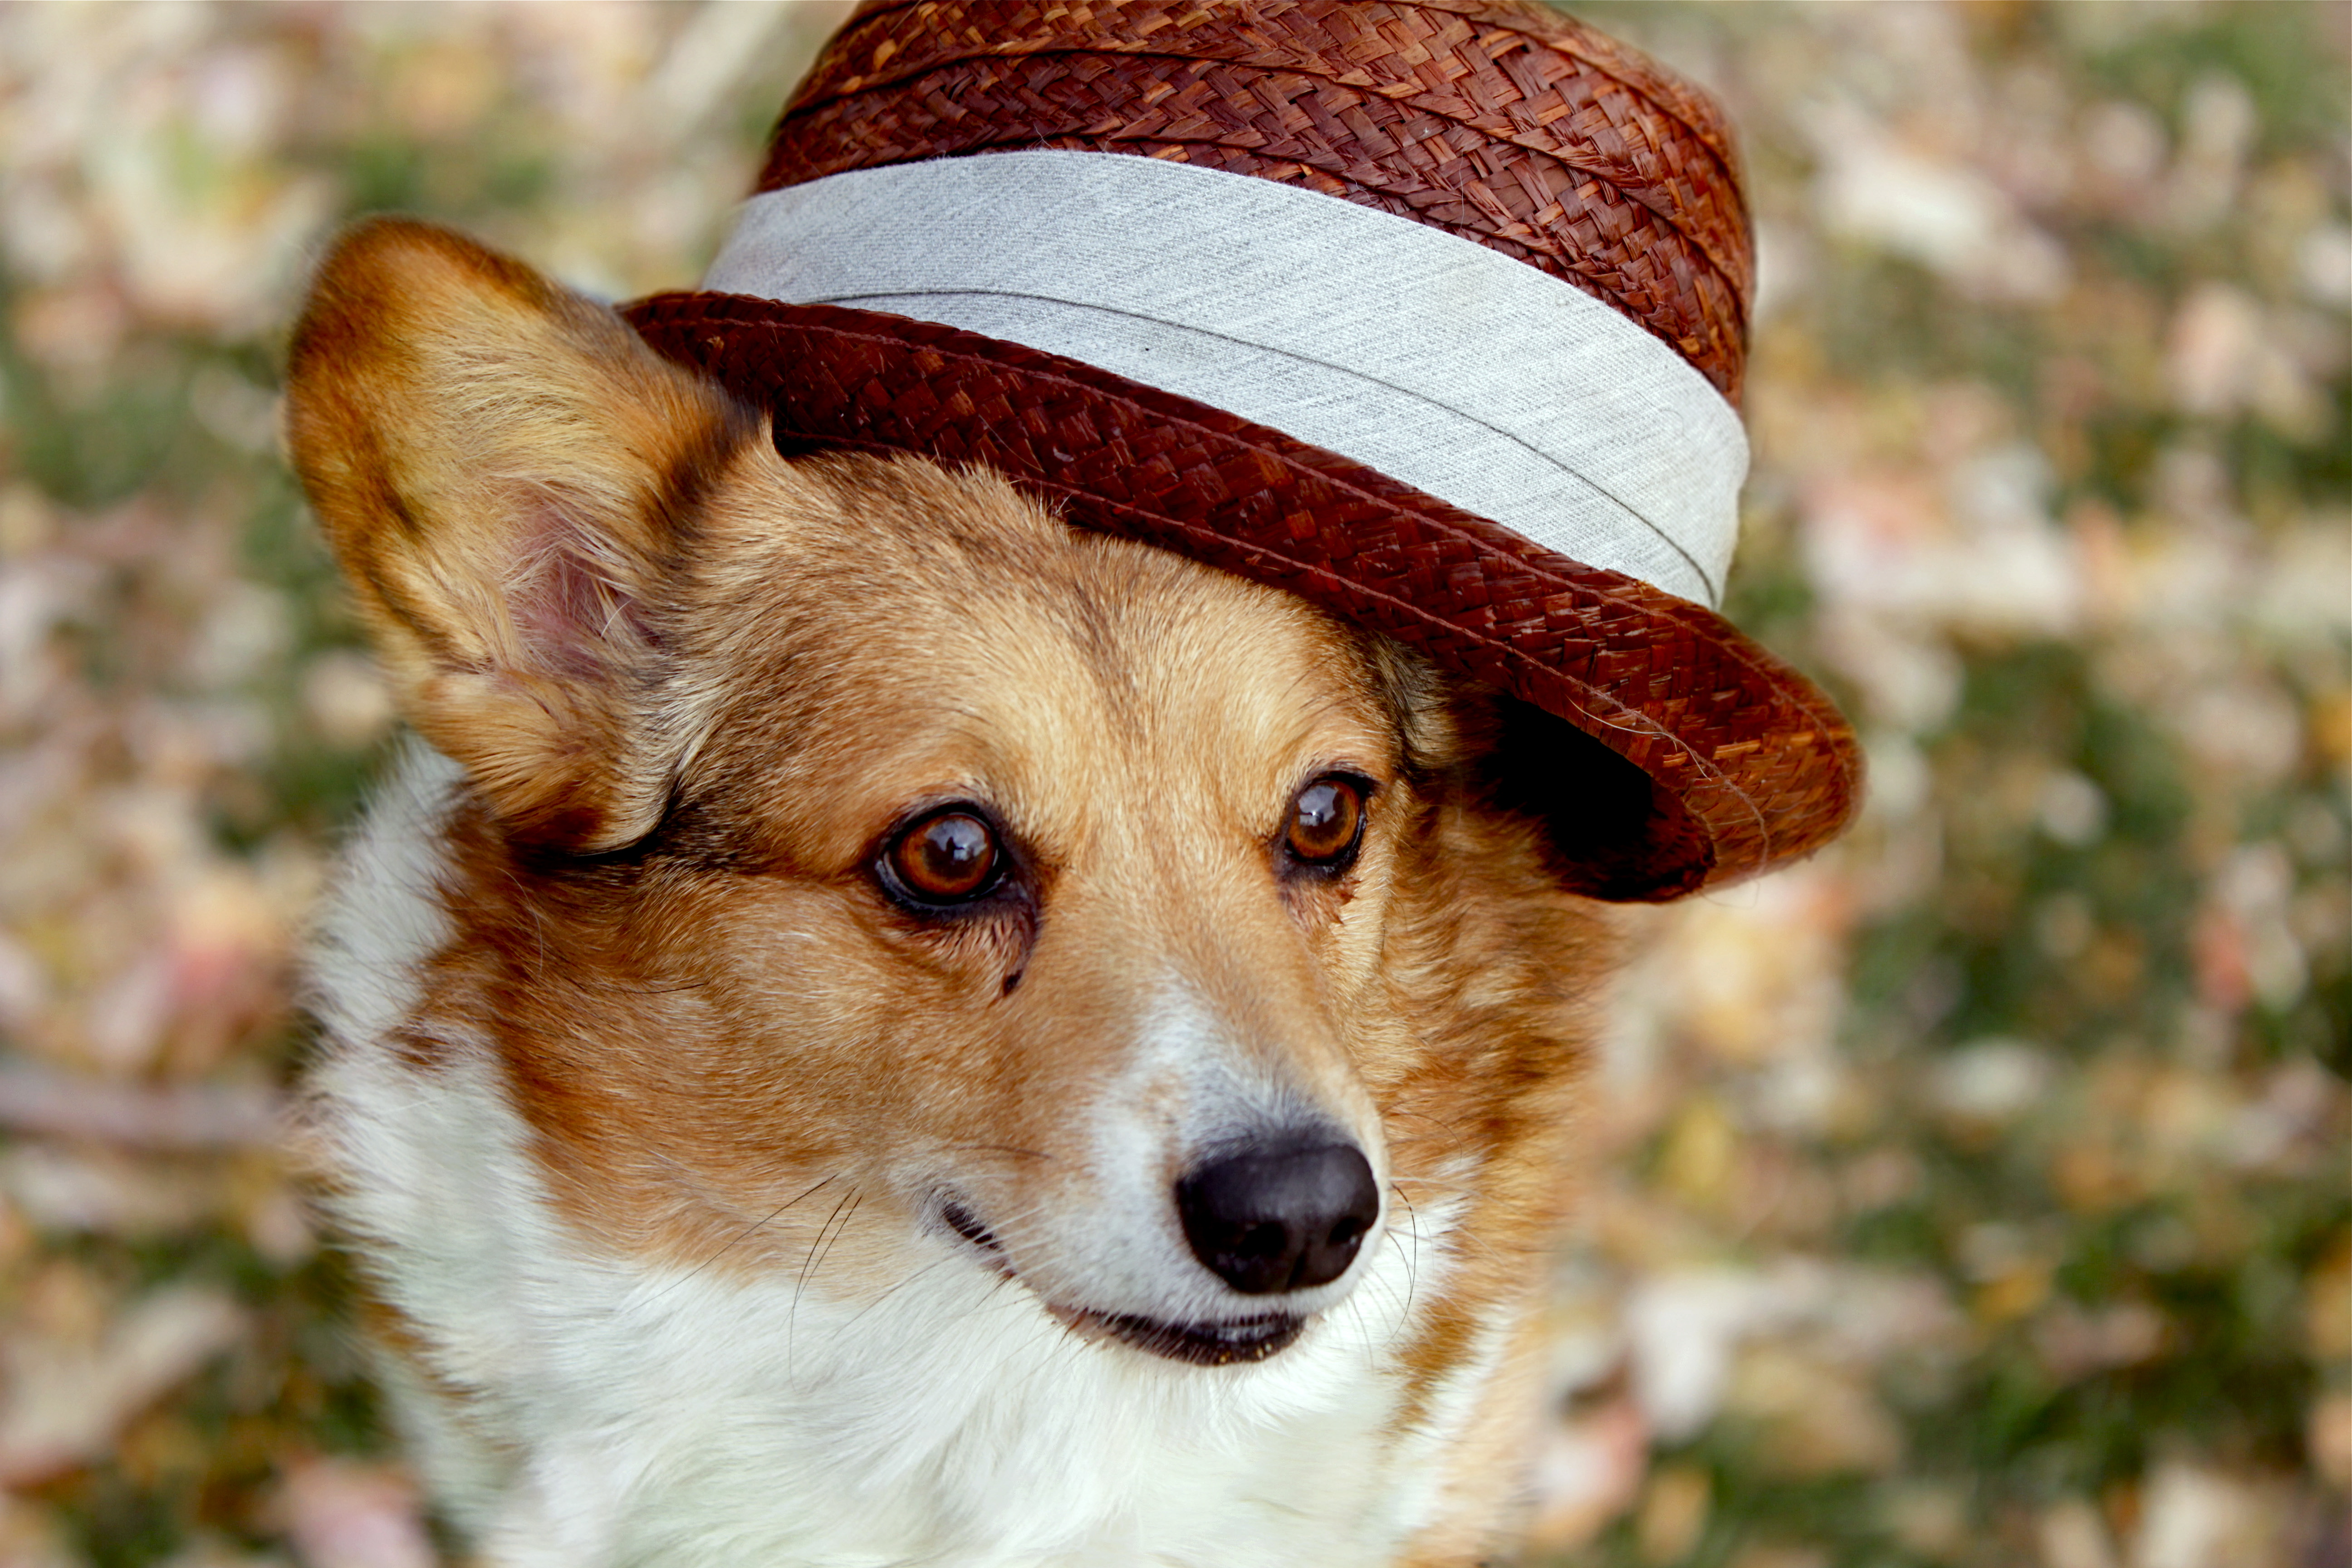 Dogs got style